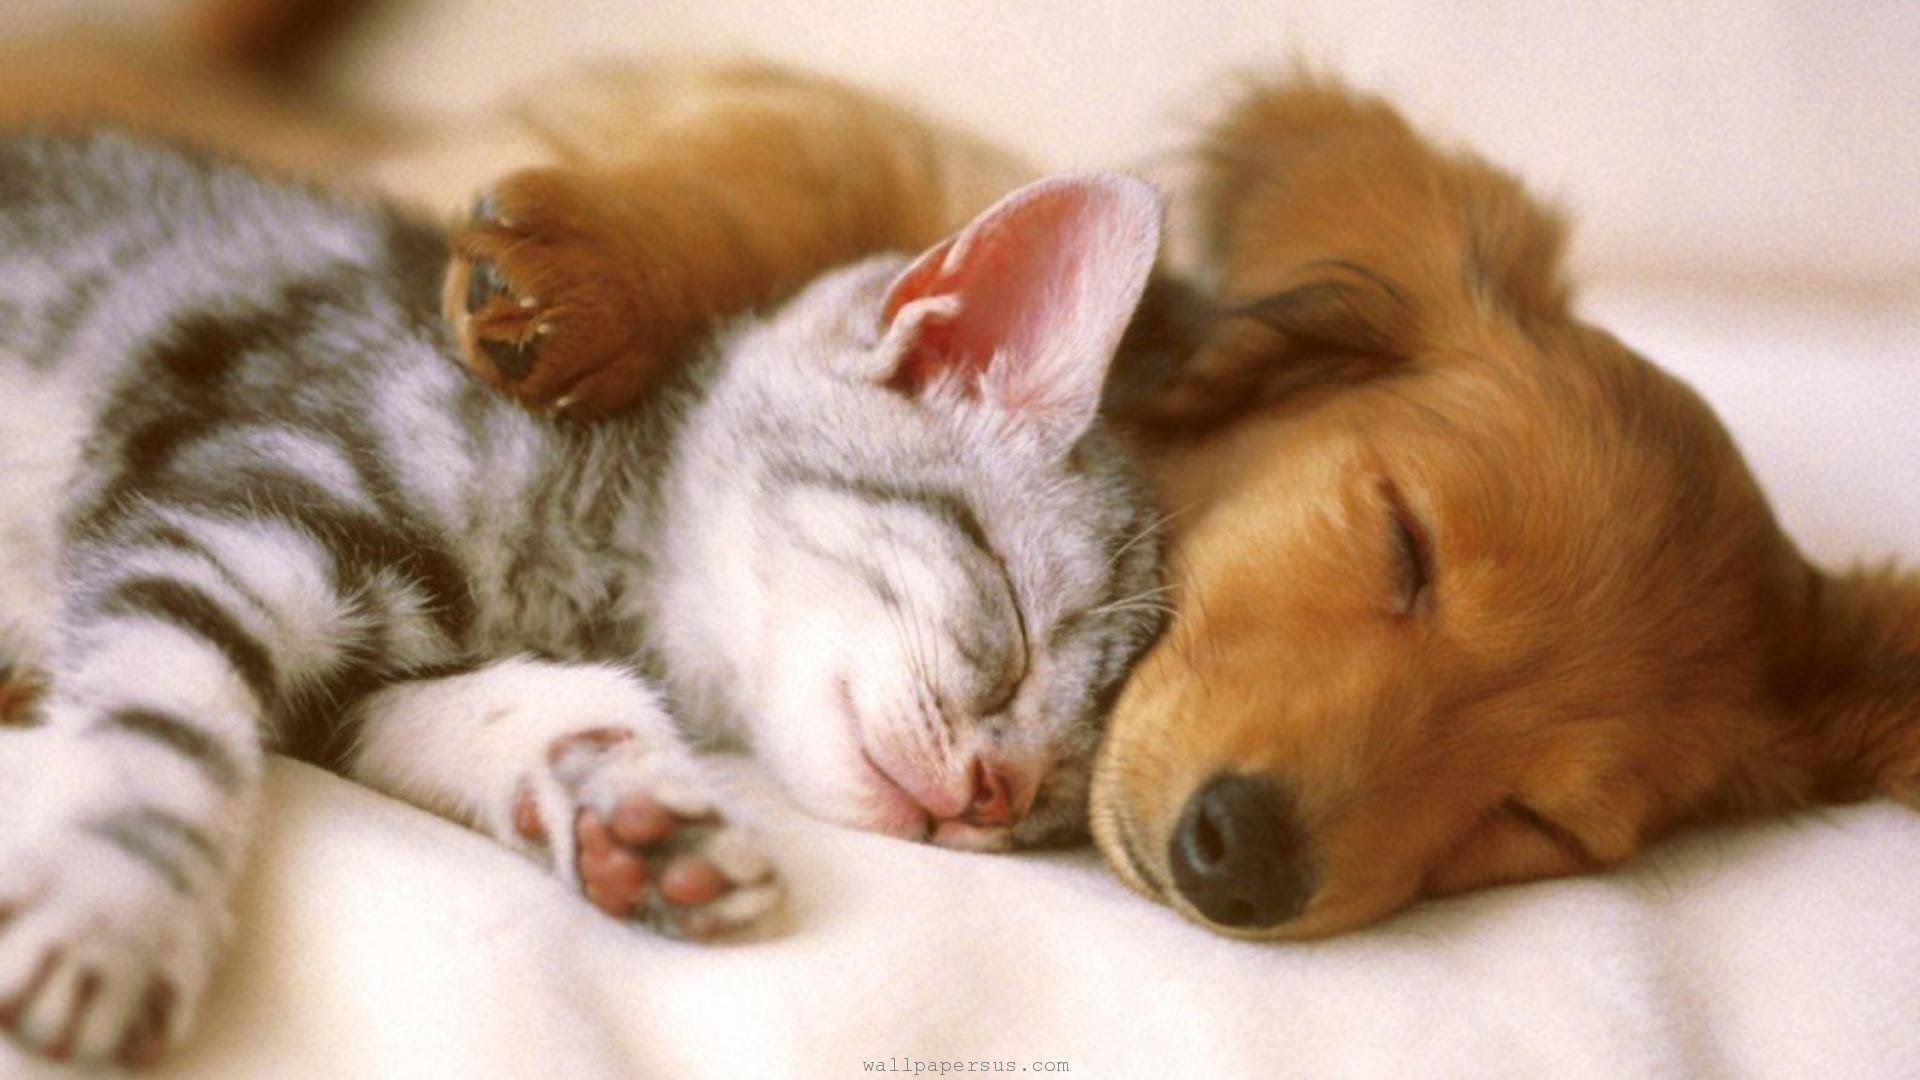 Delightful Picture Of Golden Dachshund Puppy And Kitten Sleeping Together Dogs Hugging Kittens And Puppies Animals Friendship